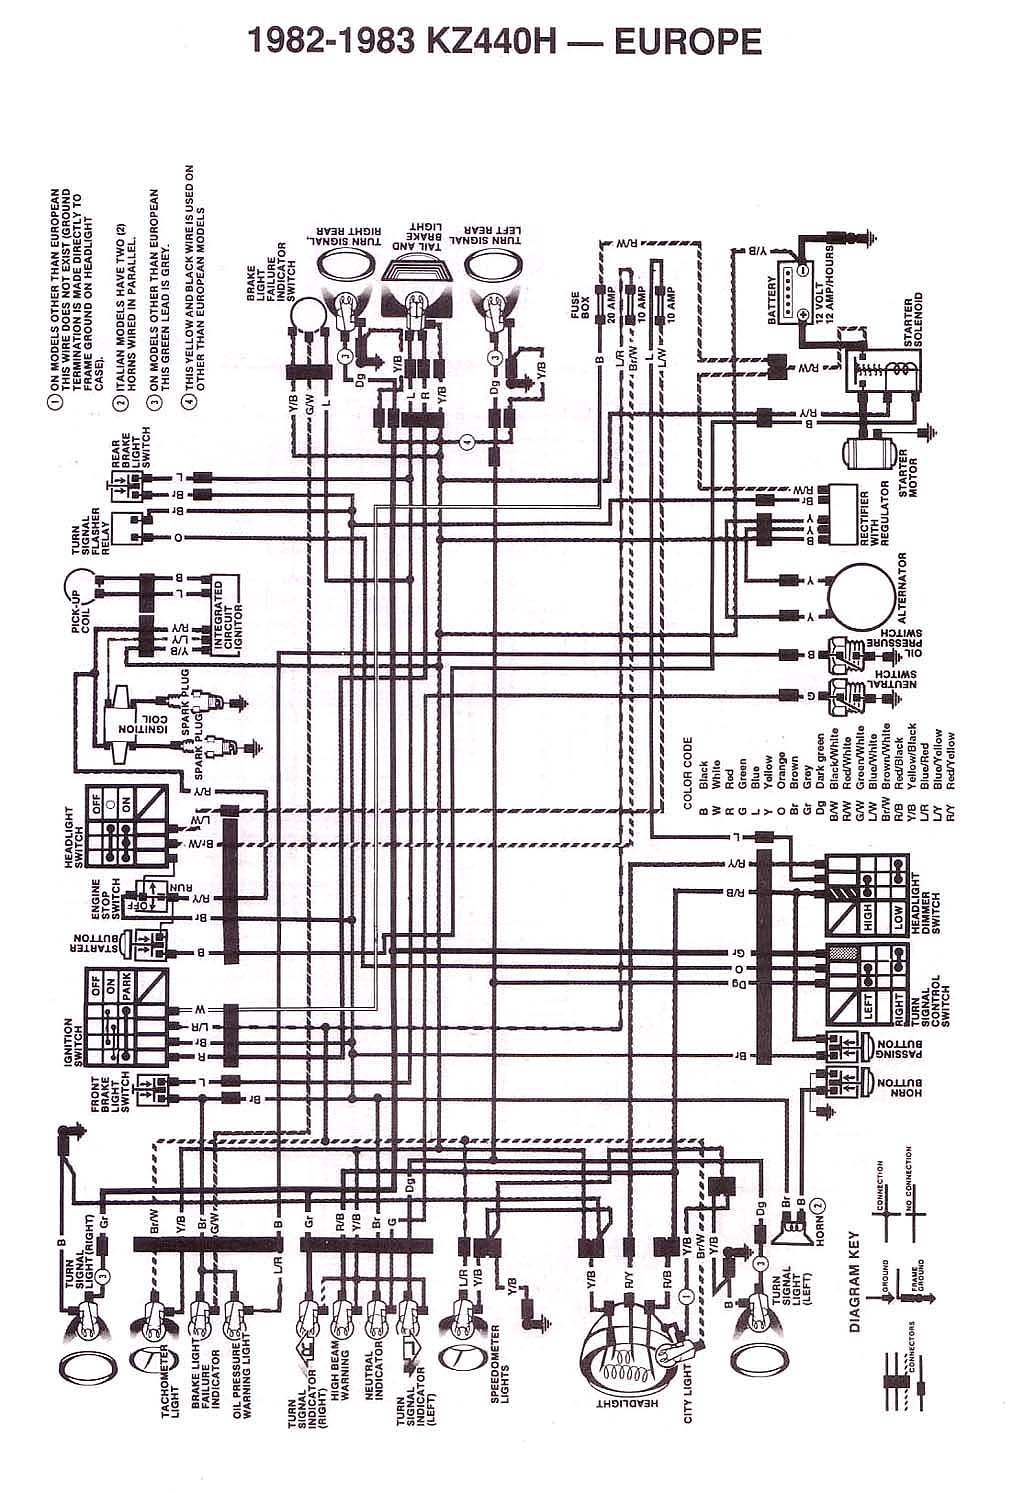 KZ440H Wiring diagram kawa z440 uk motorbike forum 1980 kawasaki 440 ltd wiring diagram at bakdesigns.co